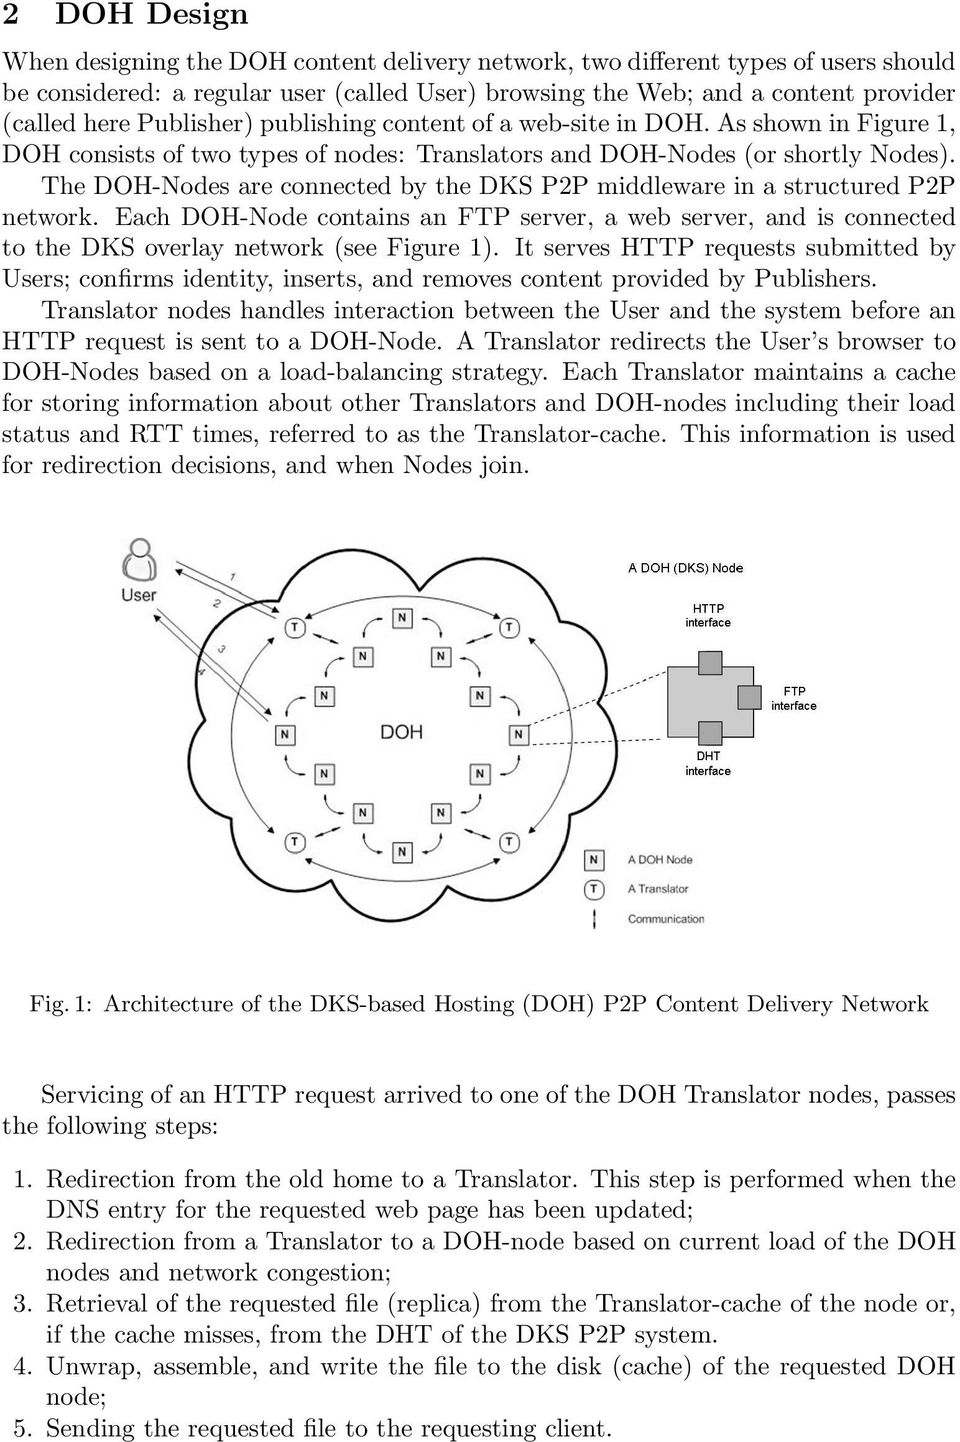 The DOH-Nodes are connected by the DKS P2P middleware in a structured P2P network. Each DOH-Node contains an FTP server, a web server, and is connected to the DKS overlay network (see Figure 1).